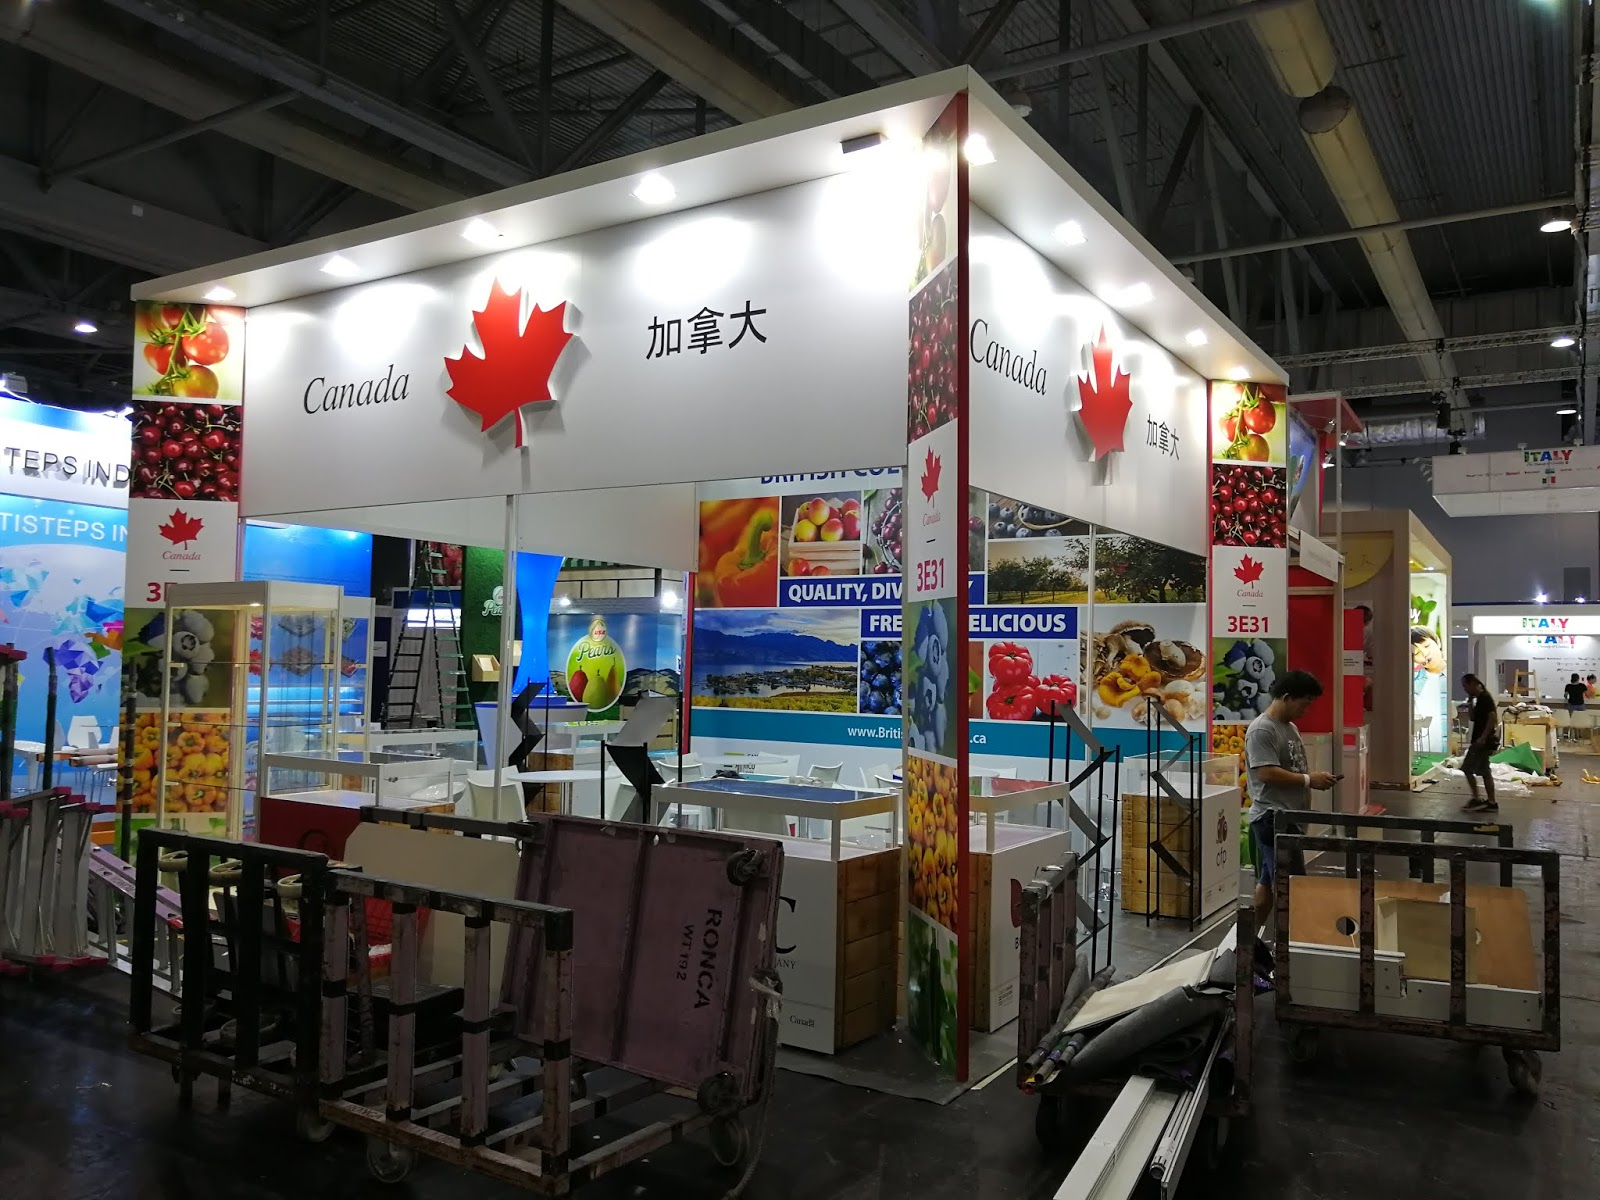 Exhibition Stand Design Hong Kong : Exhibit display booth stand contractor builder in china yoho expo: 2018